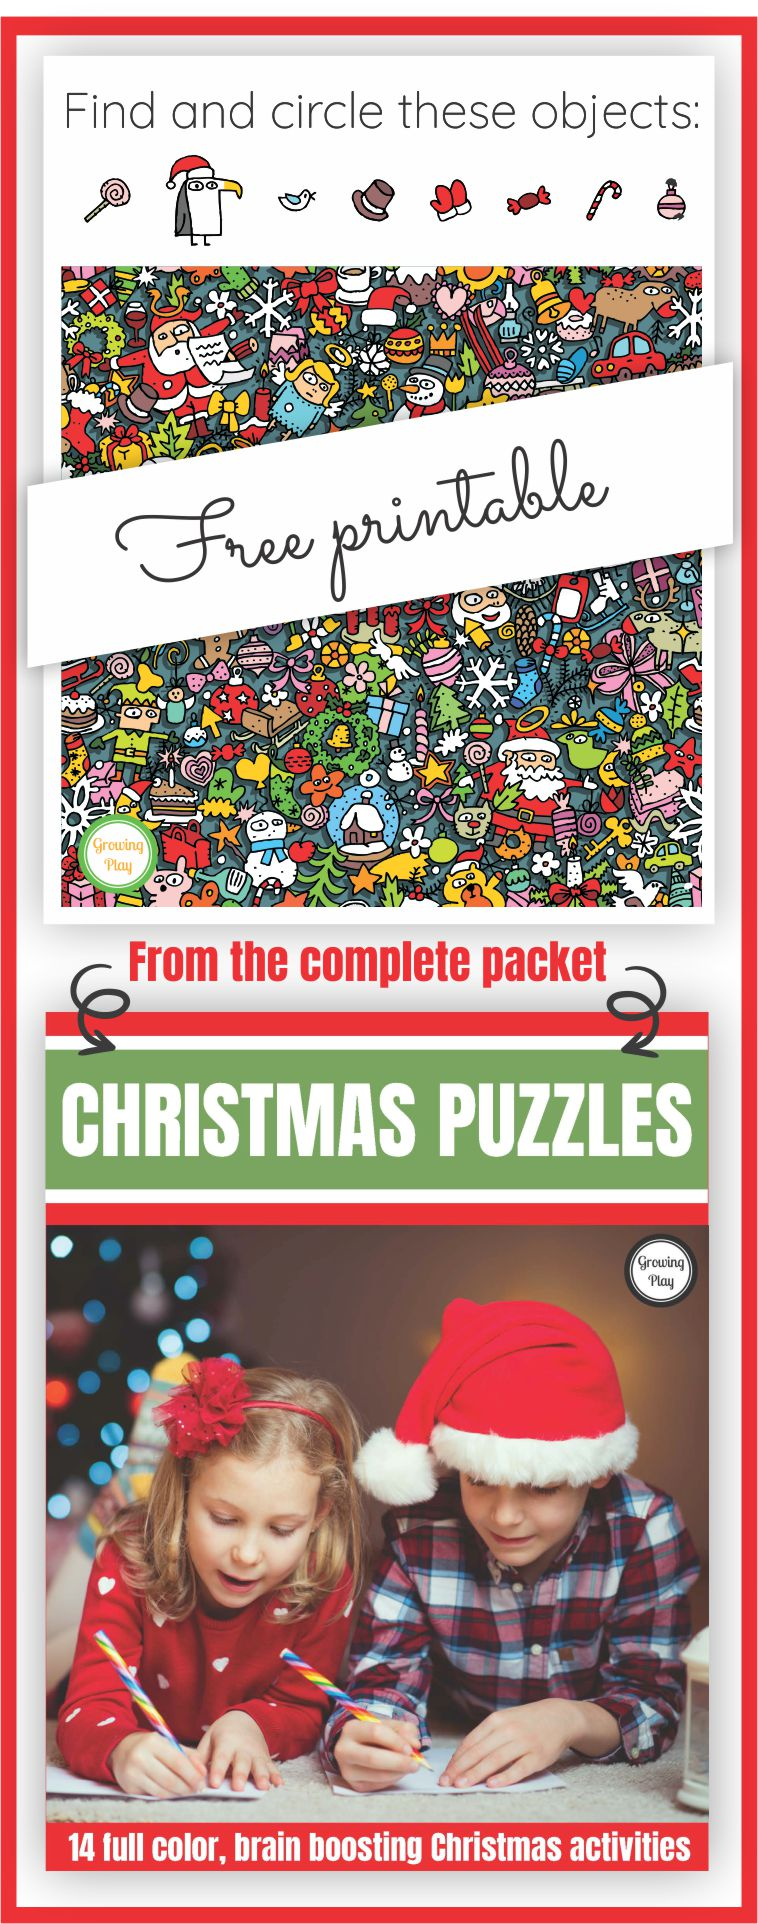 Are you looking for a FUN, brain-boosting activity to entertain the kids this Christmas? Here is a look and find Christmas free printable from Growing Play. You can download it at the bottom of the post.